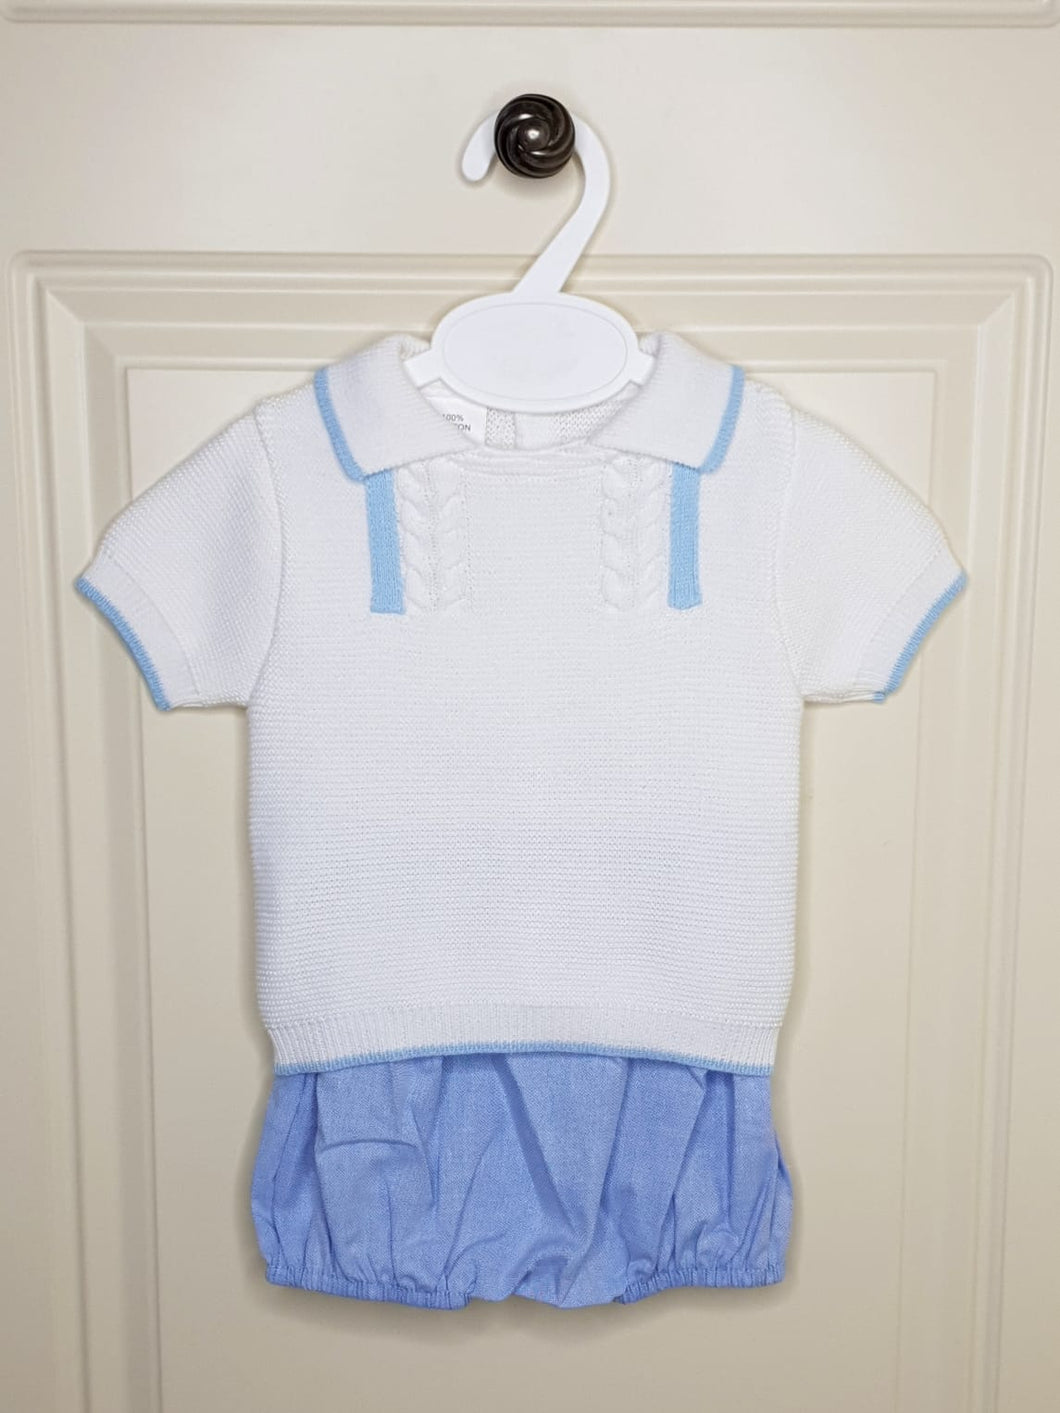 Baby Boys Baby Blue Knit Top With Blue Jam Pants